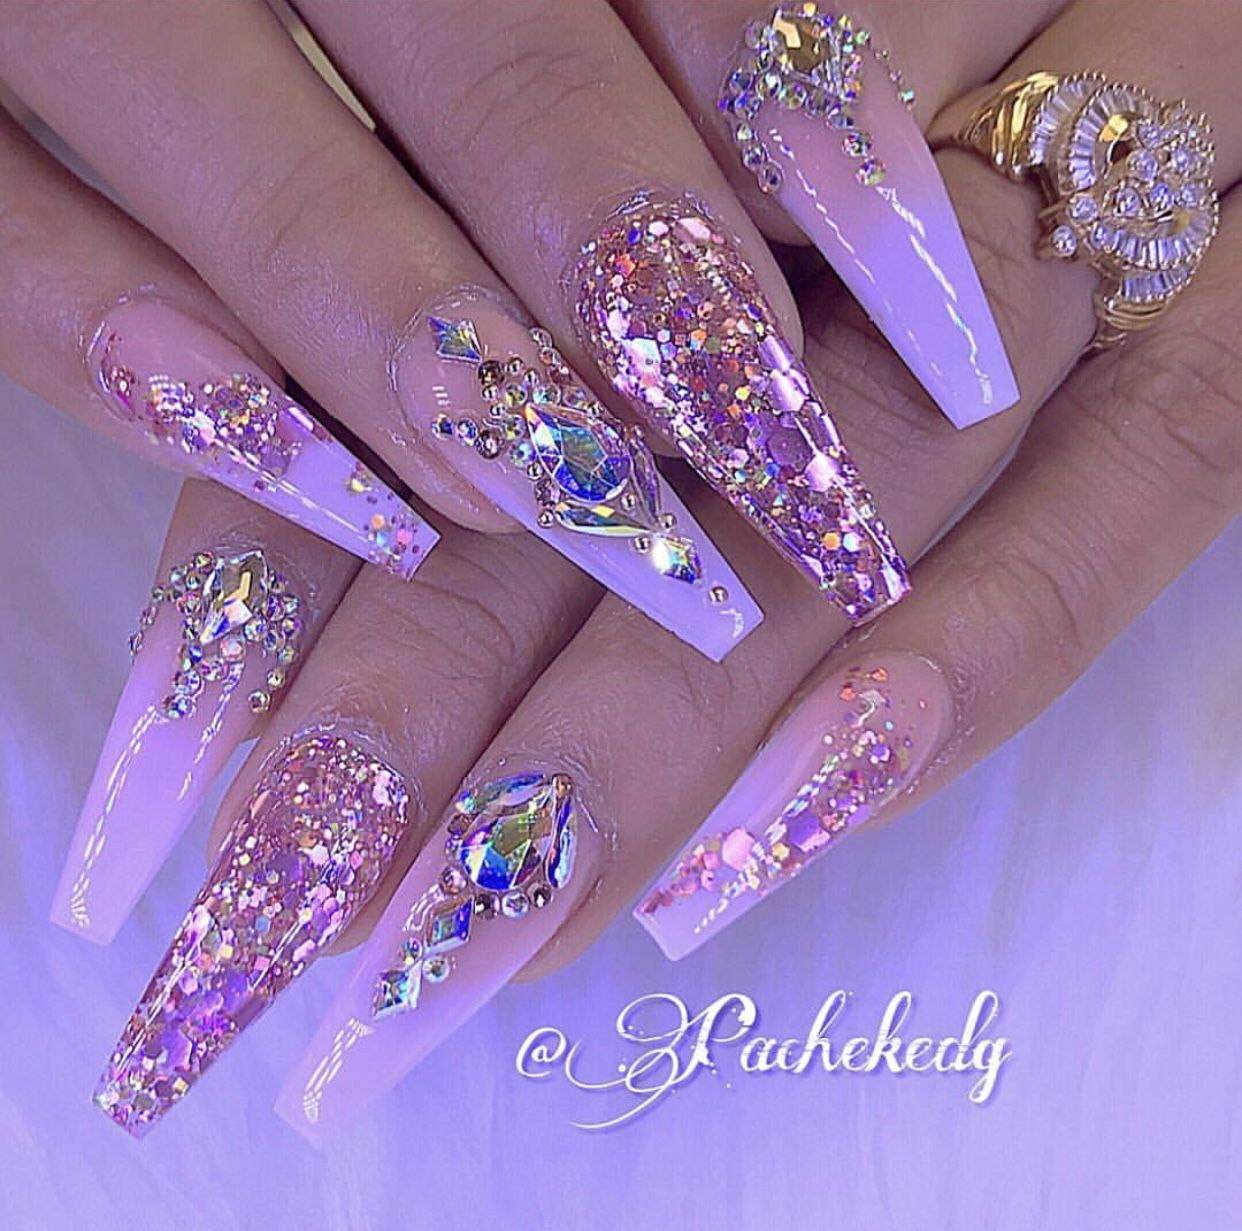 pink ombr glitter coffin nails